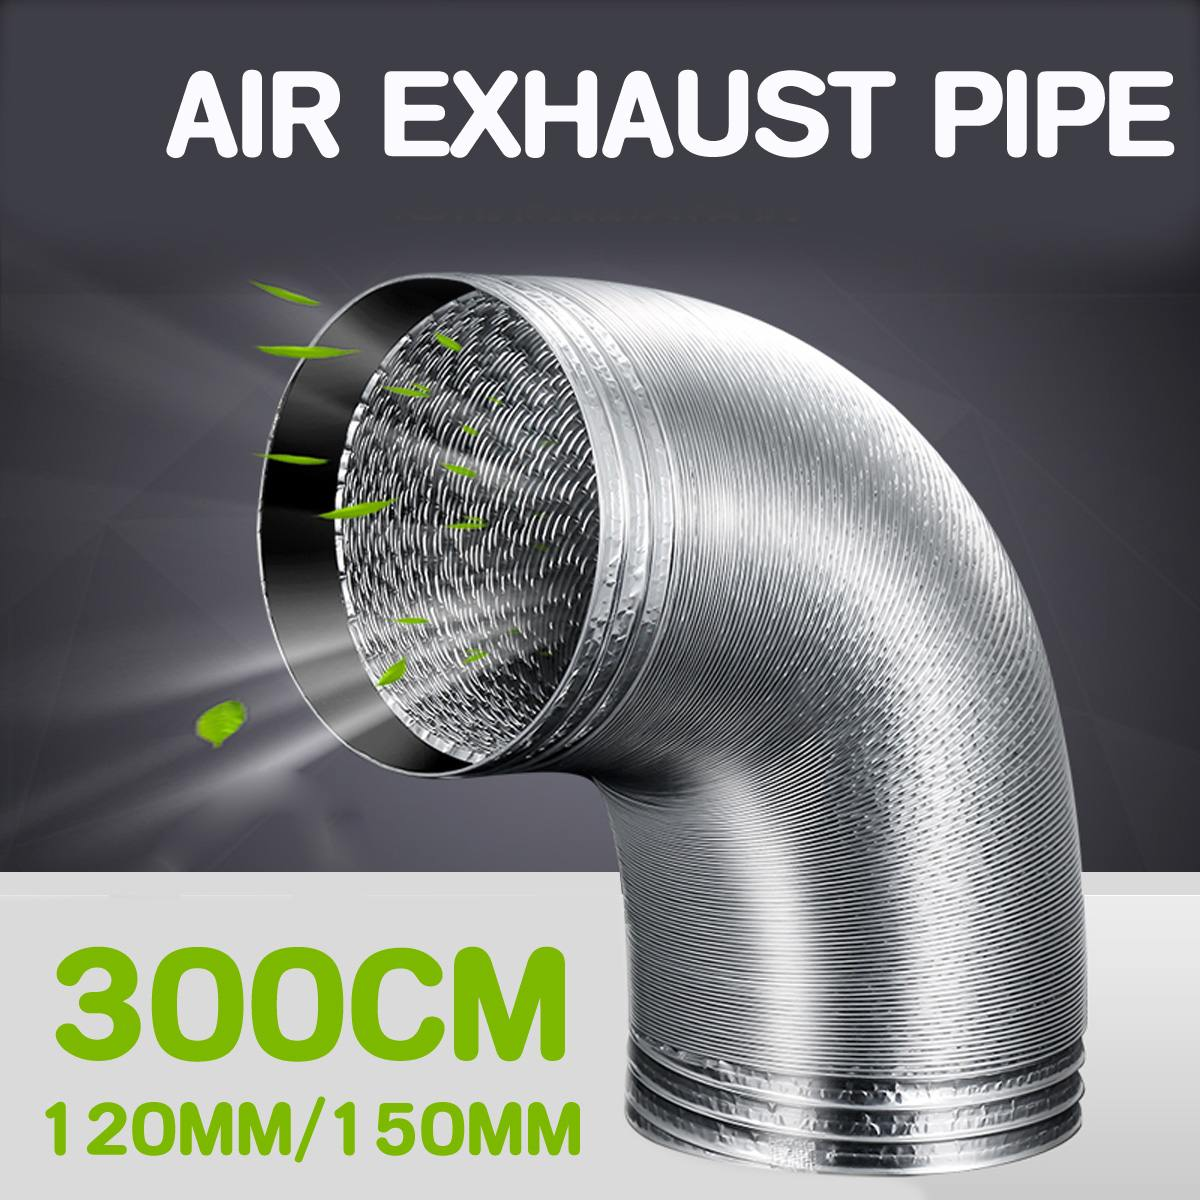 300CM 120mm/150mm Aluminum Tube Air Ventilation Pipe Hose Flexible Exhaust Duct Fresh Air System Vent Bathroom